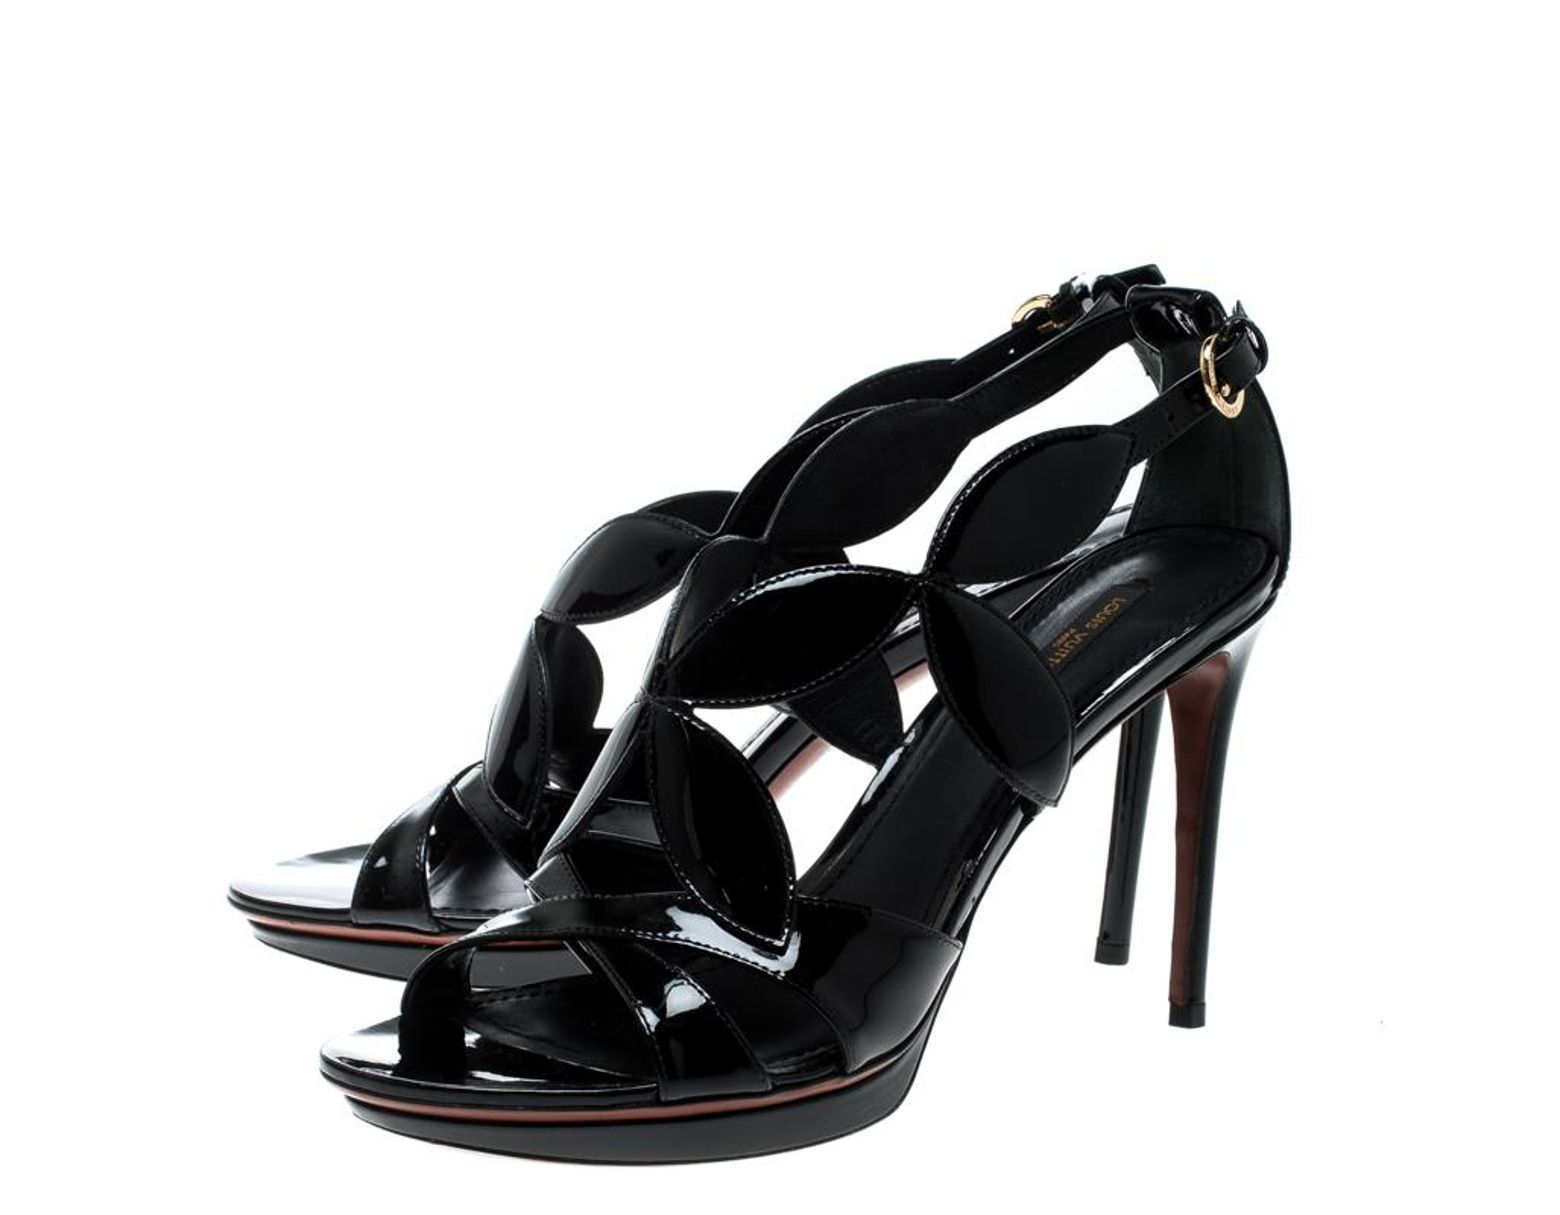 0ad5453bf90 Women's Black Leather